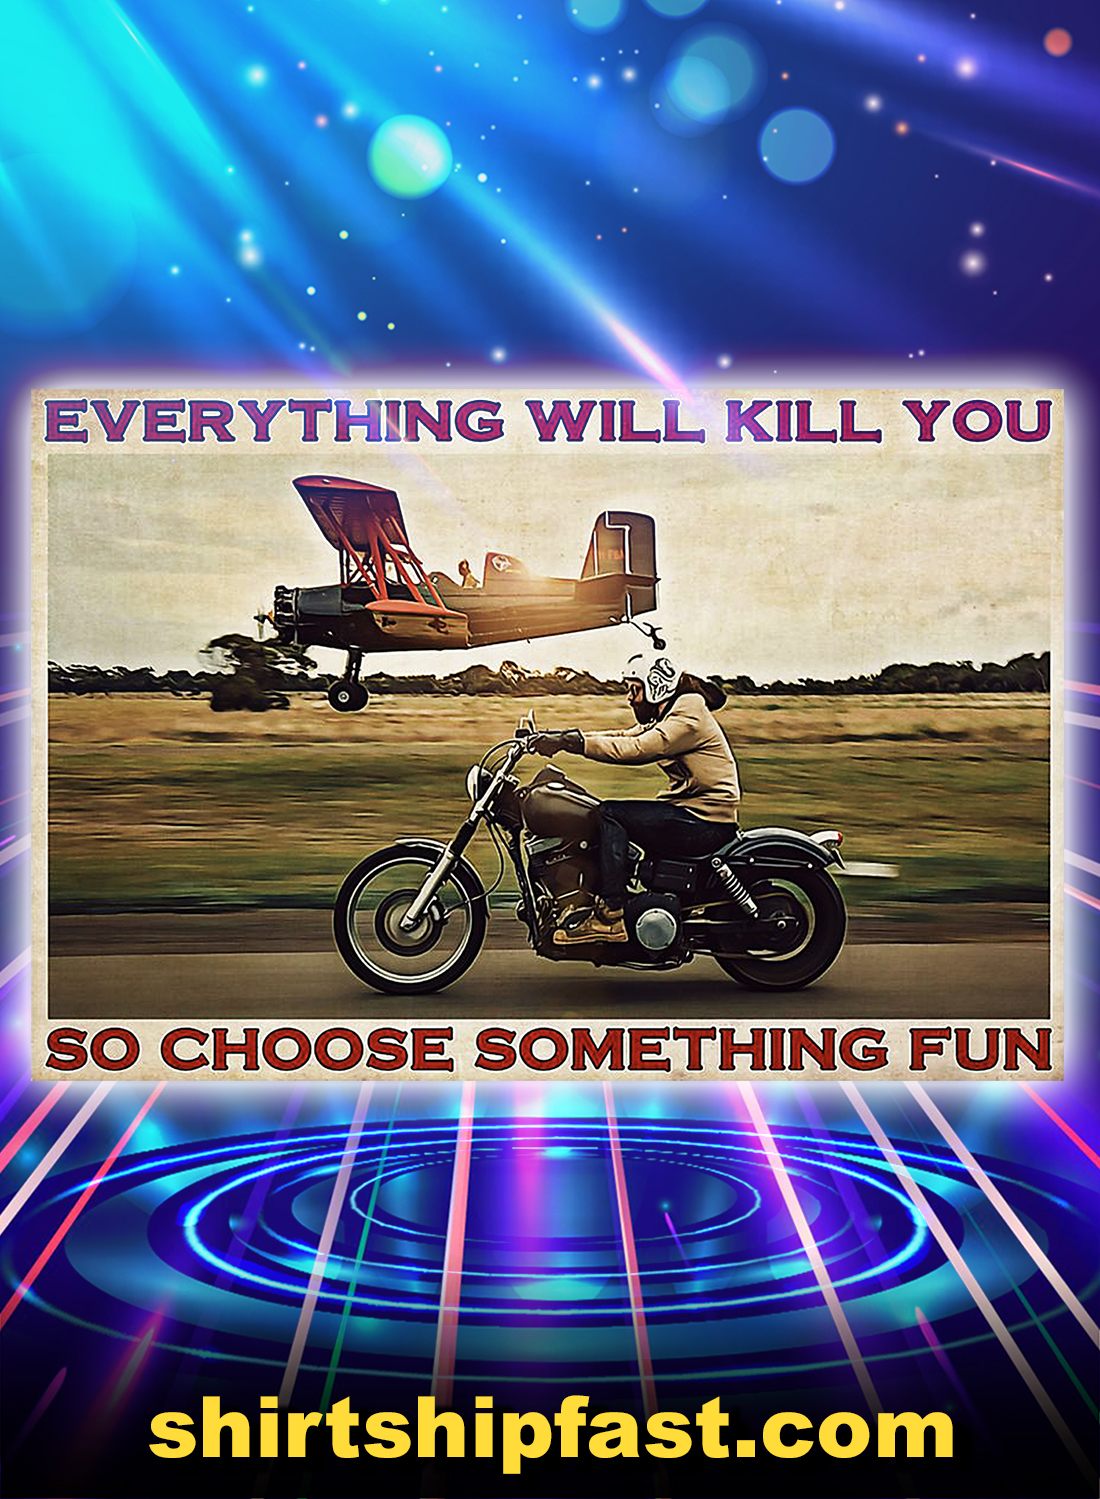 Motorbike and planes everything will kill you so choose something fun poster - A4